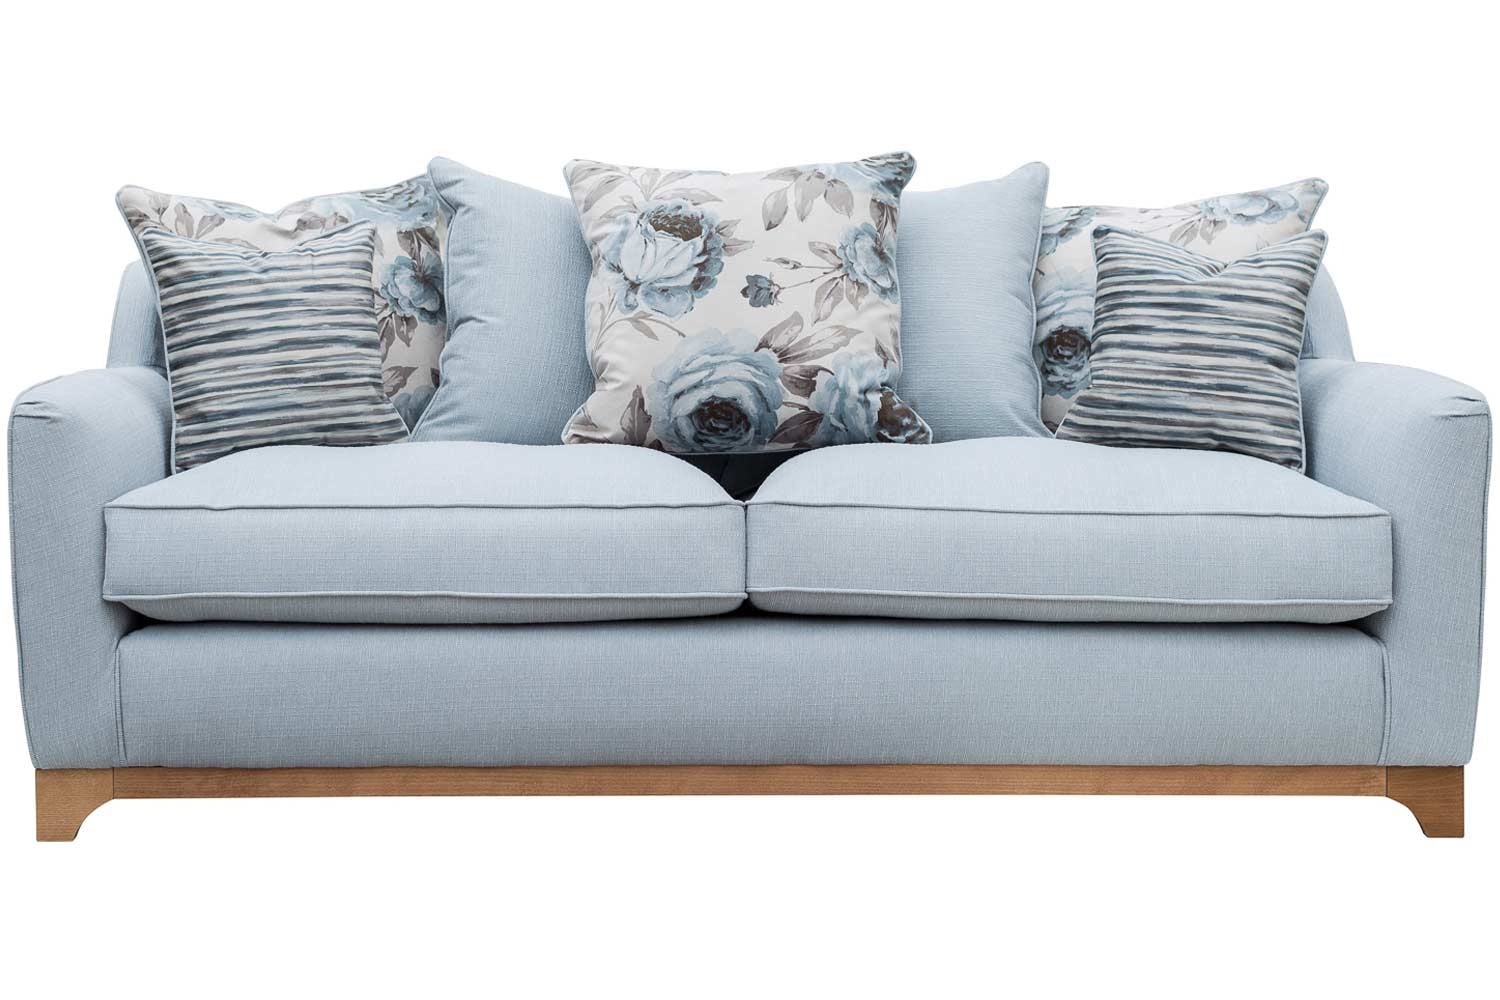 Casey 3 seater sofa ireland for Sofa 7 seater